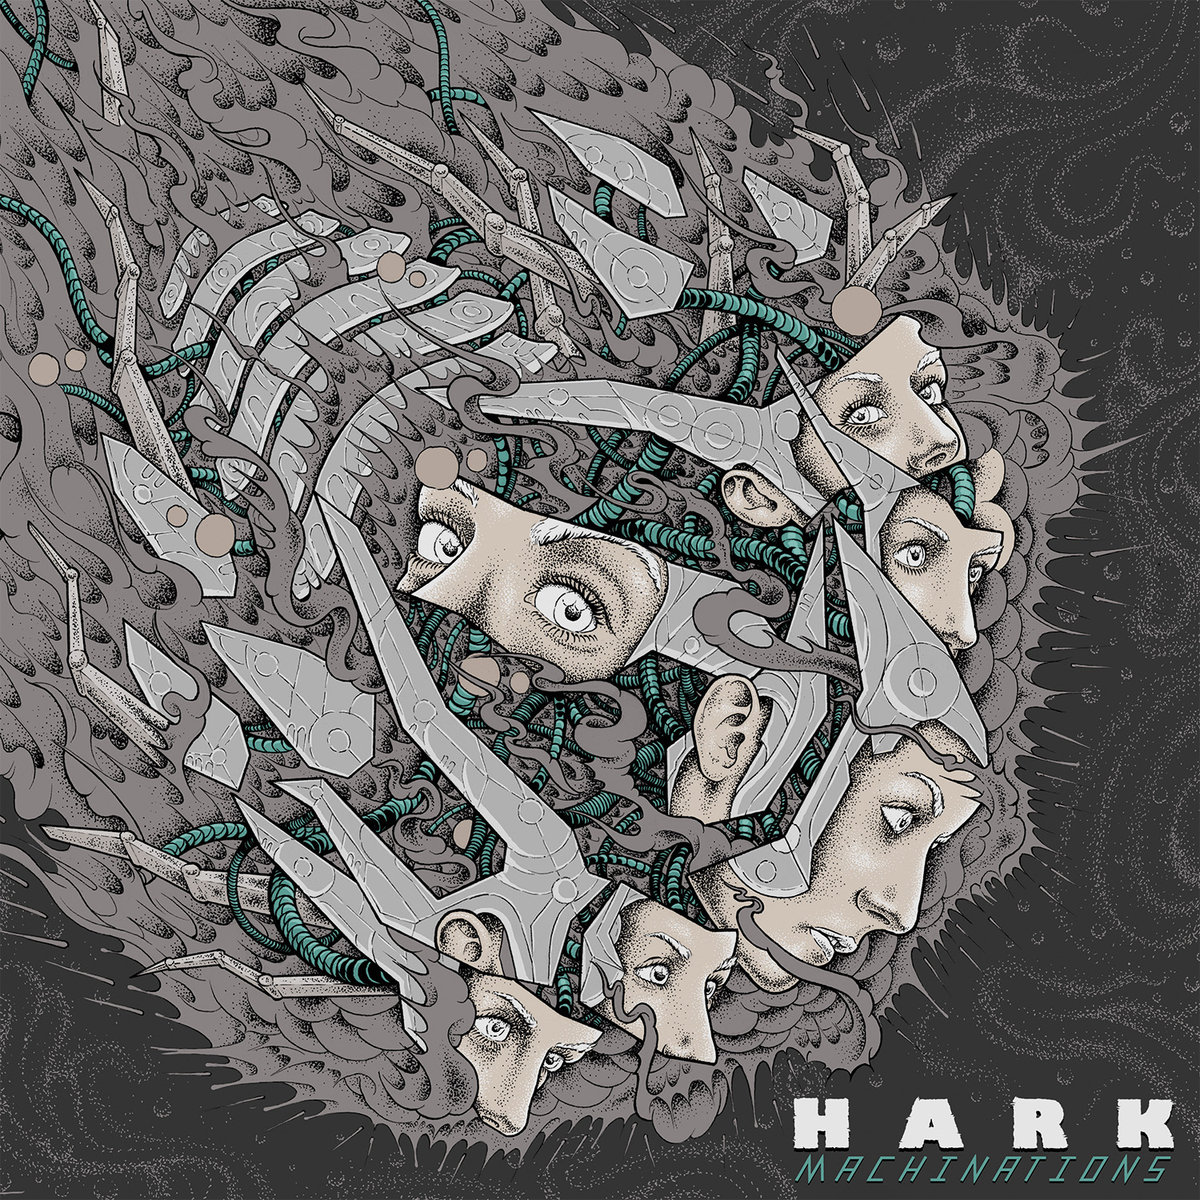 HARK Machinations – Vinyl LP (black)